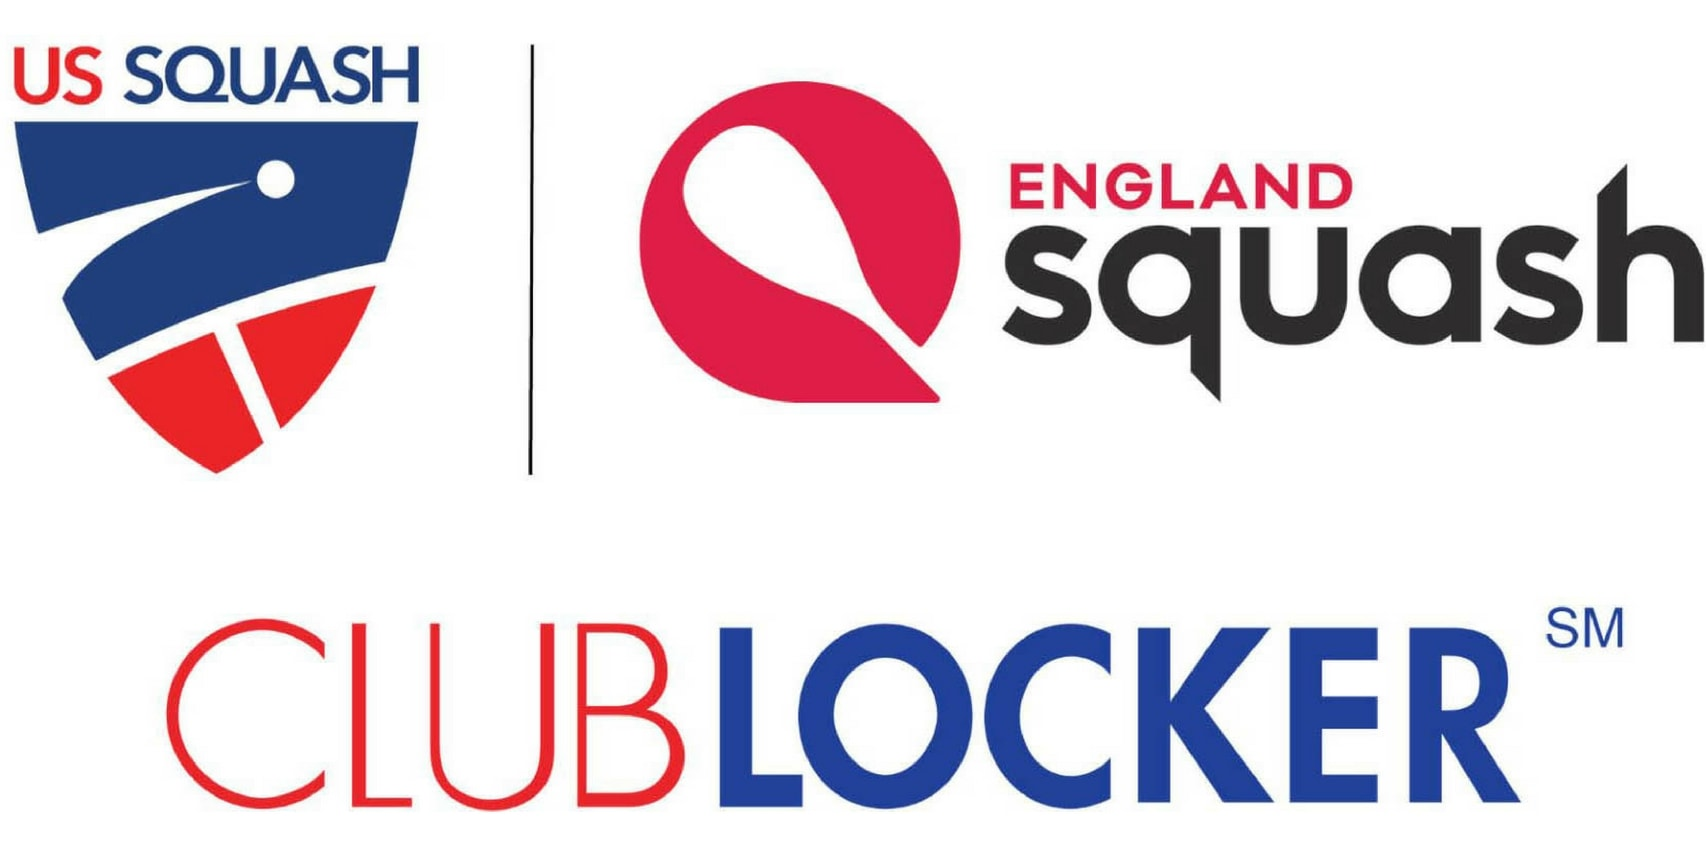 England Squash has teamed up with US Squash to deliver the Club Locker technology platform to squash in England